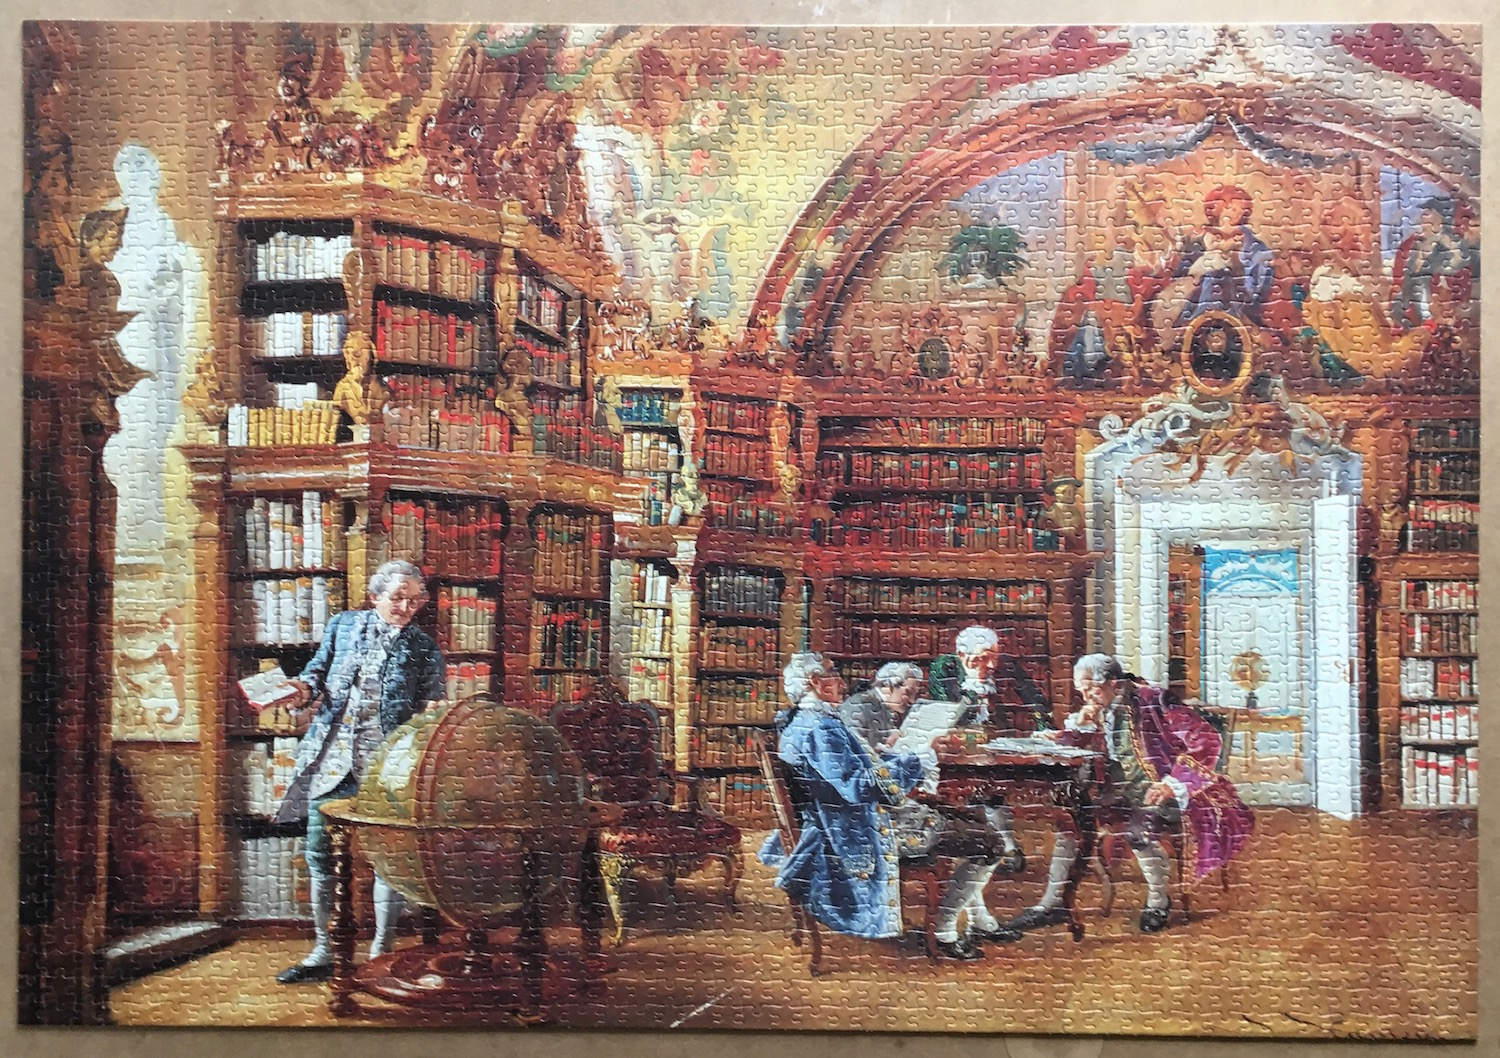 Image of the Assembled Puzzle 2000, Jumbo, In the Library, Johann Hamza